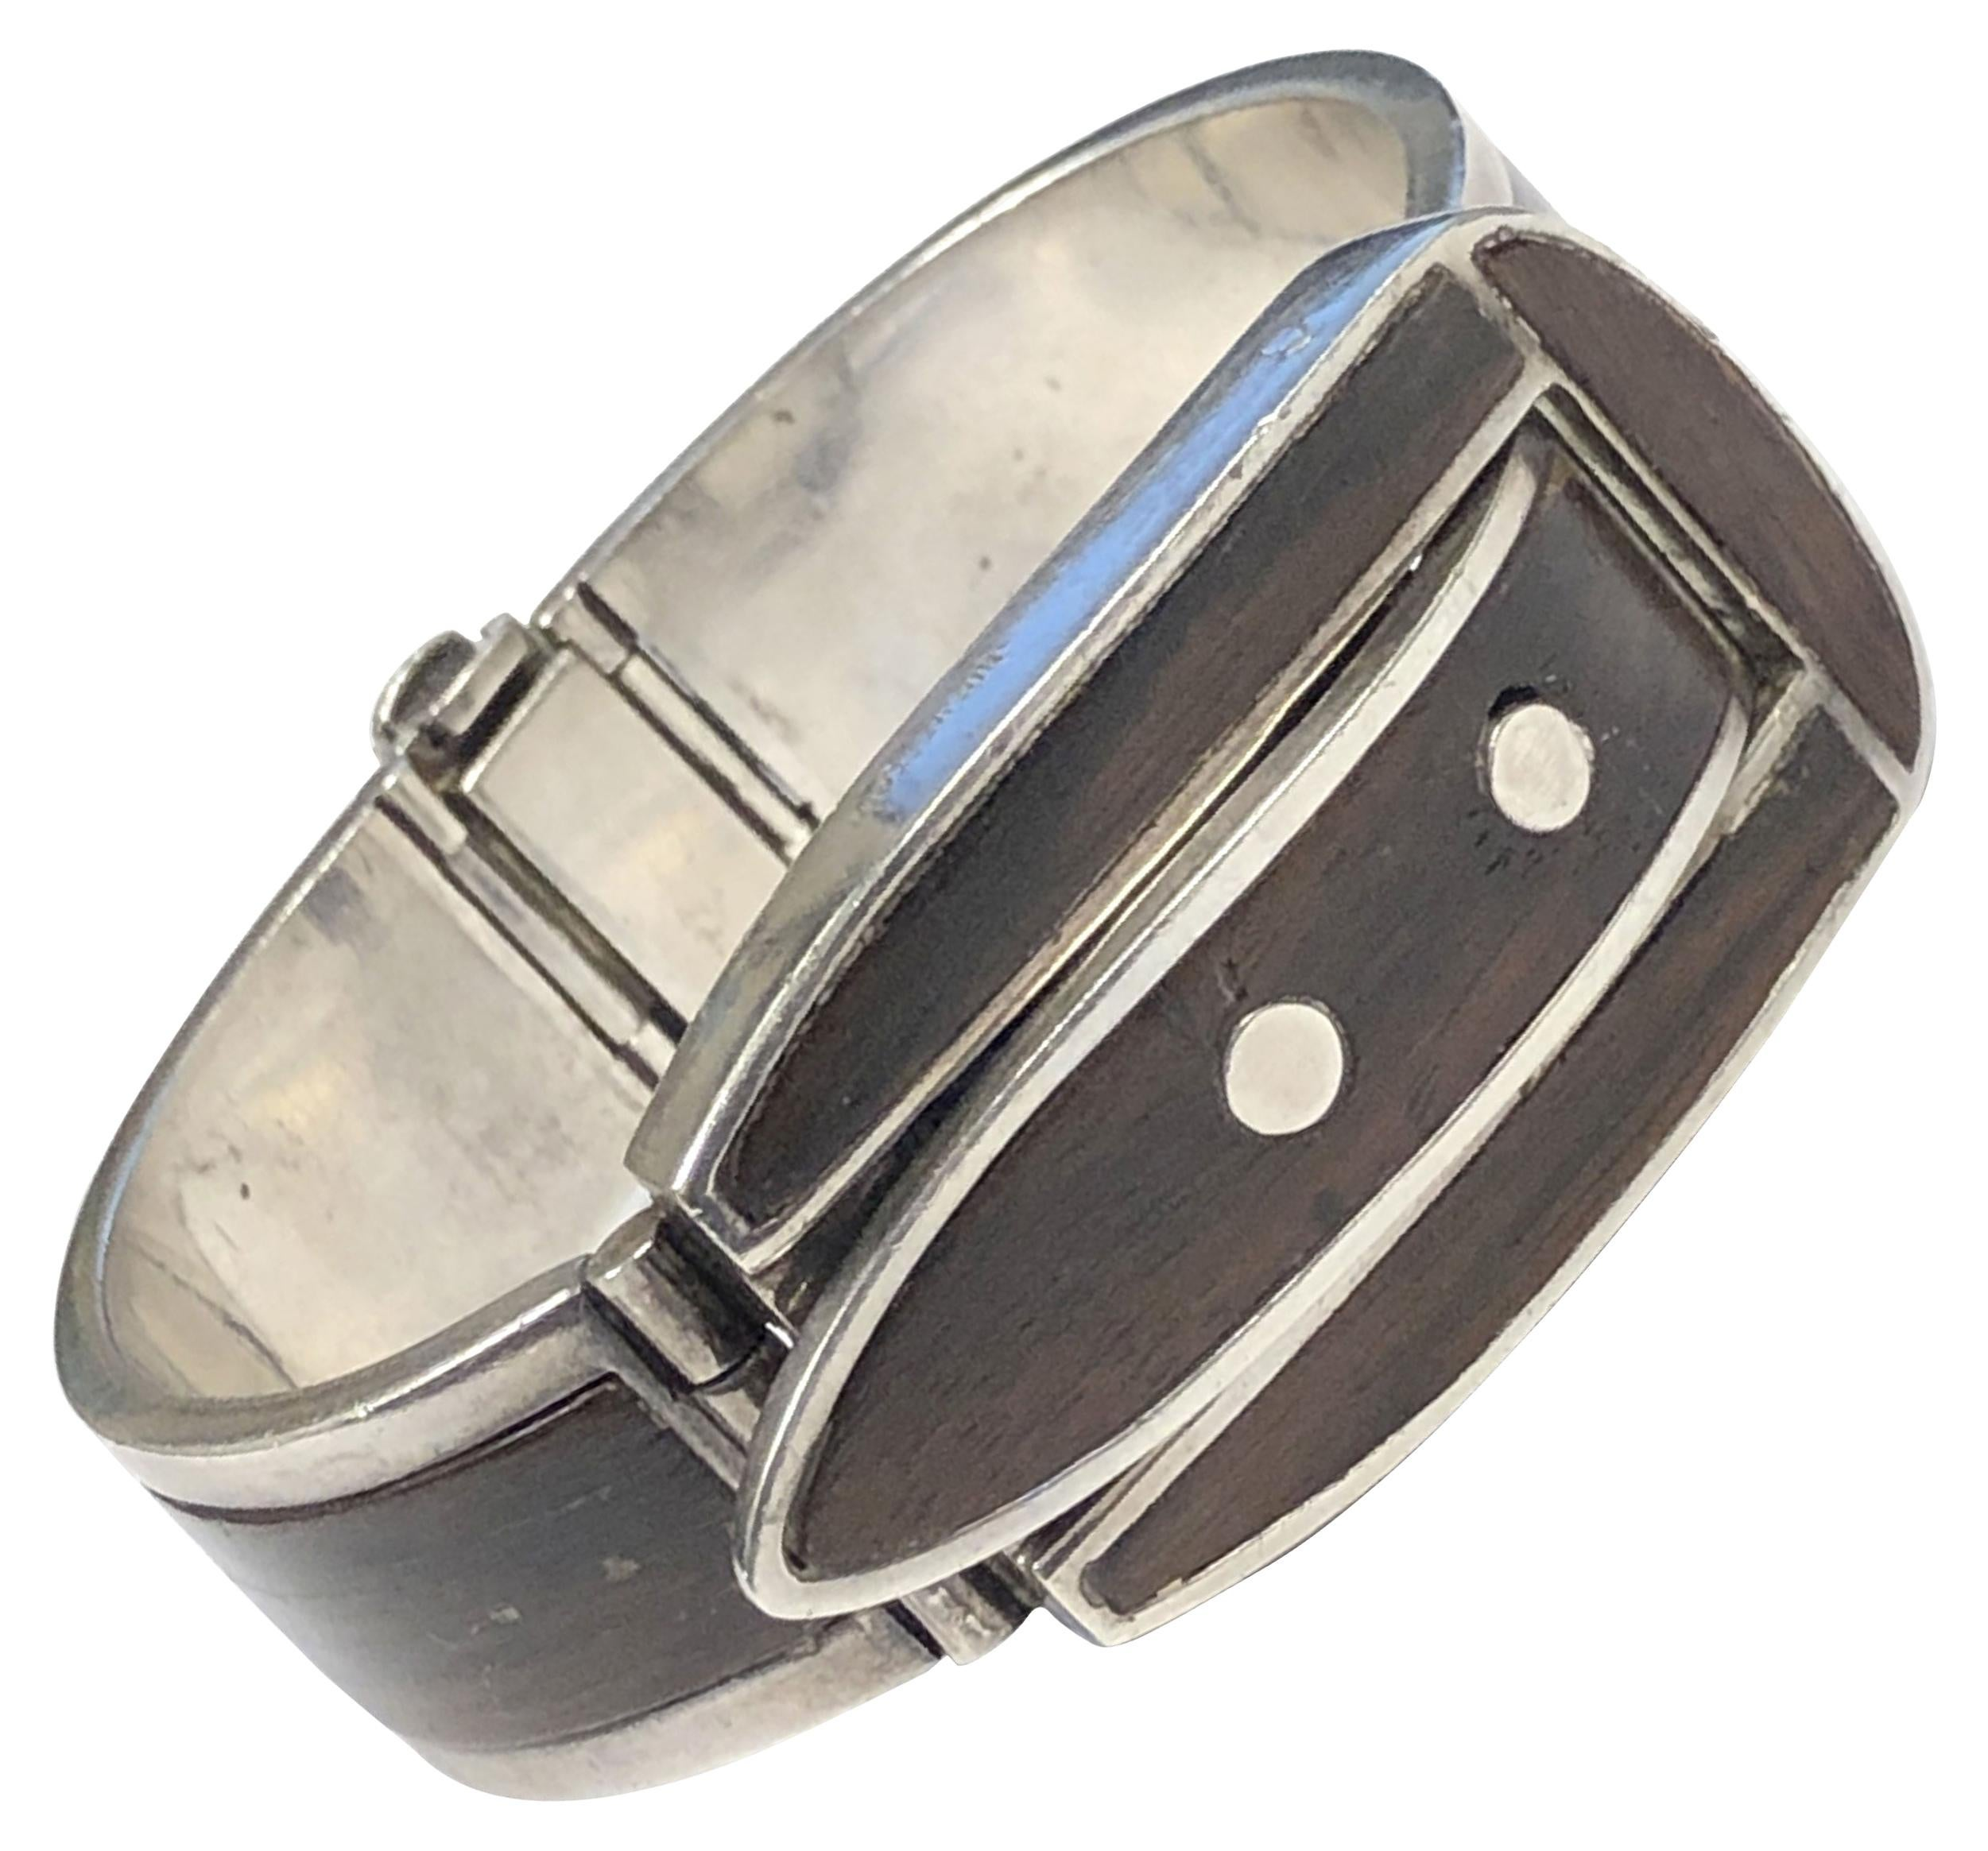 Gucci 1970 Sterling Silver and Wood Buckle form Bracelet with Hidden Wrist Watch